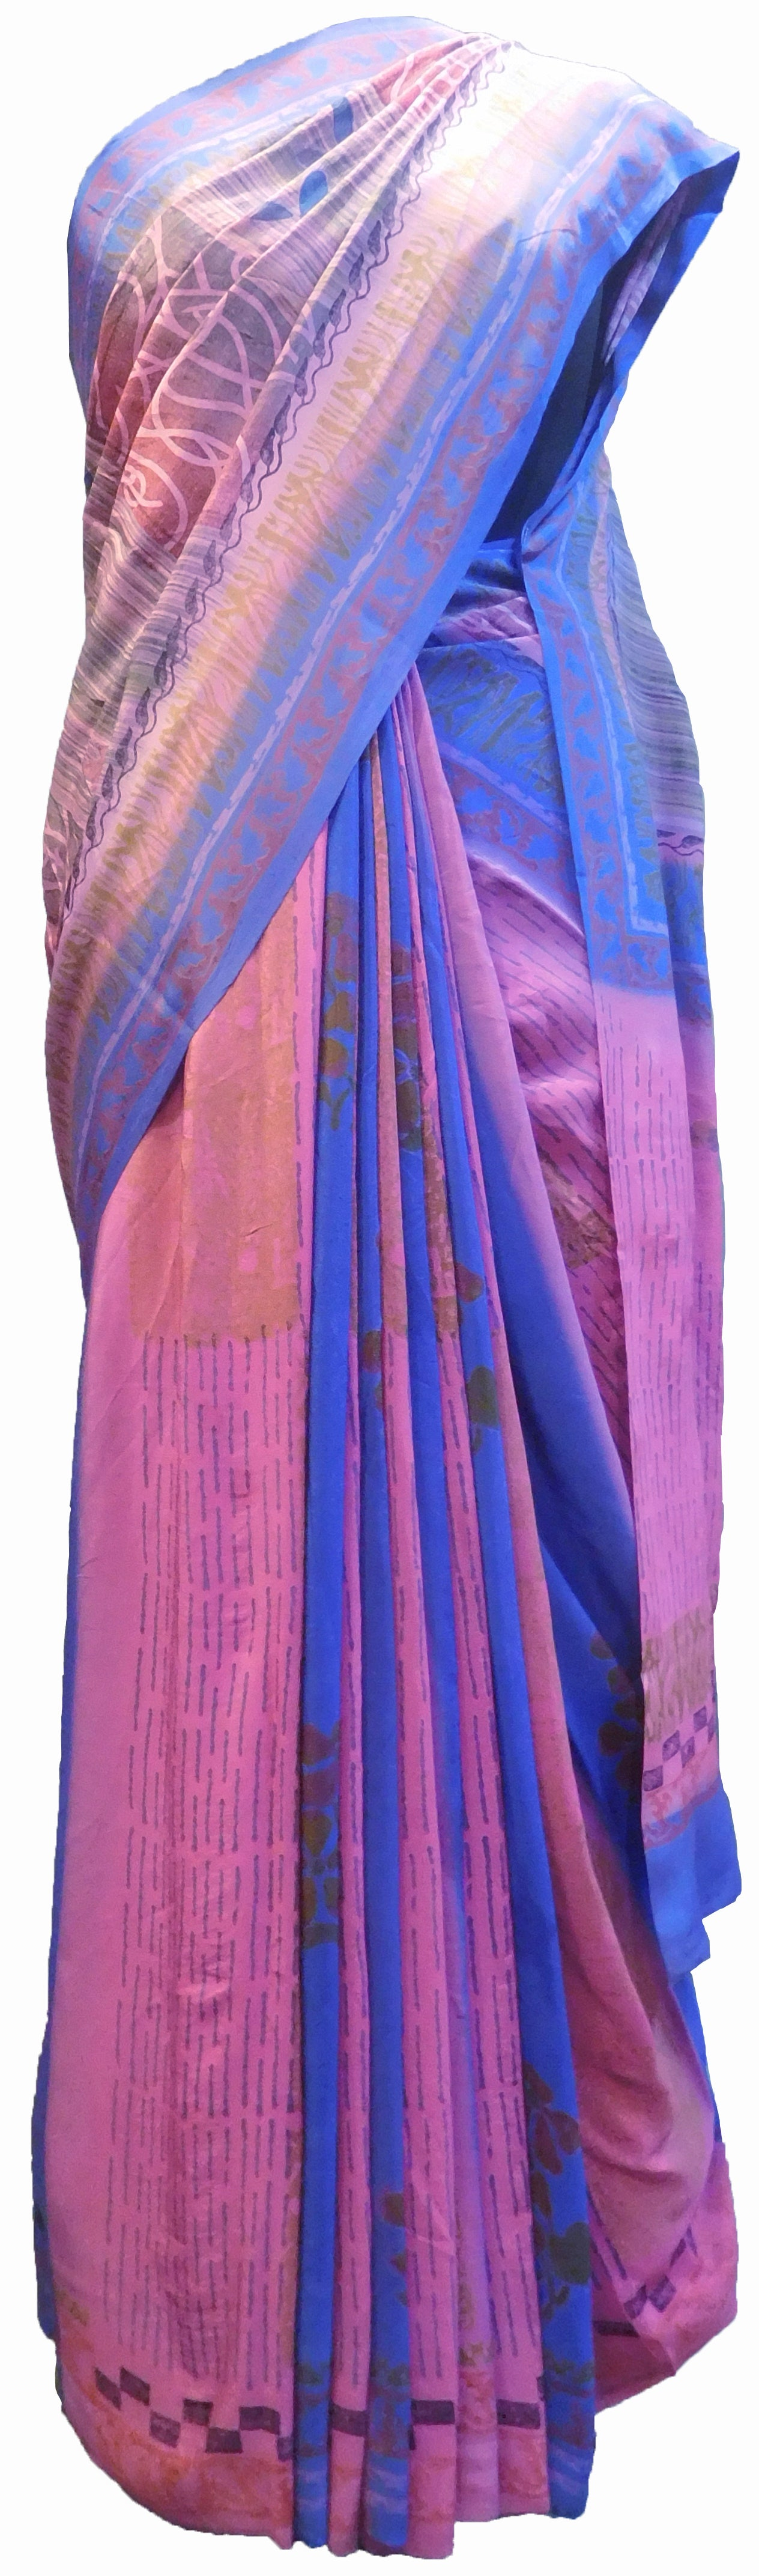 SMSAREE Multi Color Designer Wedding Partywear Pure Crepe Hand Brush Print Hand Embroidery Work Bridal Saree Sari With Blouse Piece RP353